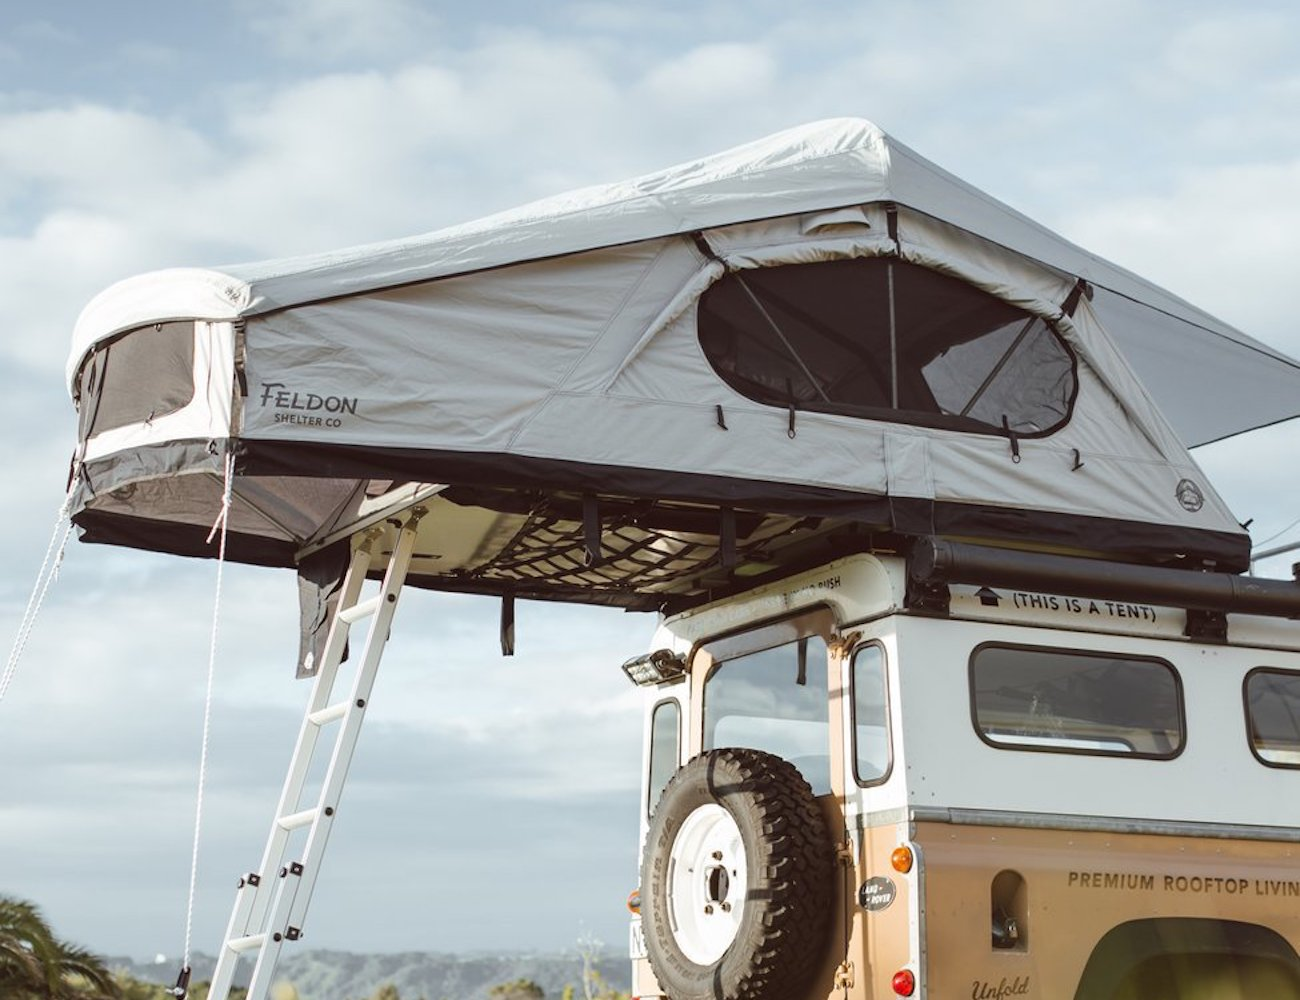 Feldon Shelter Crow's Nest Extended Rooftop Tent